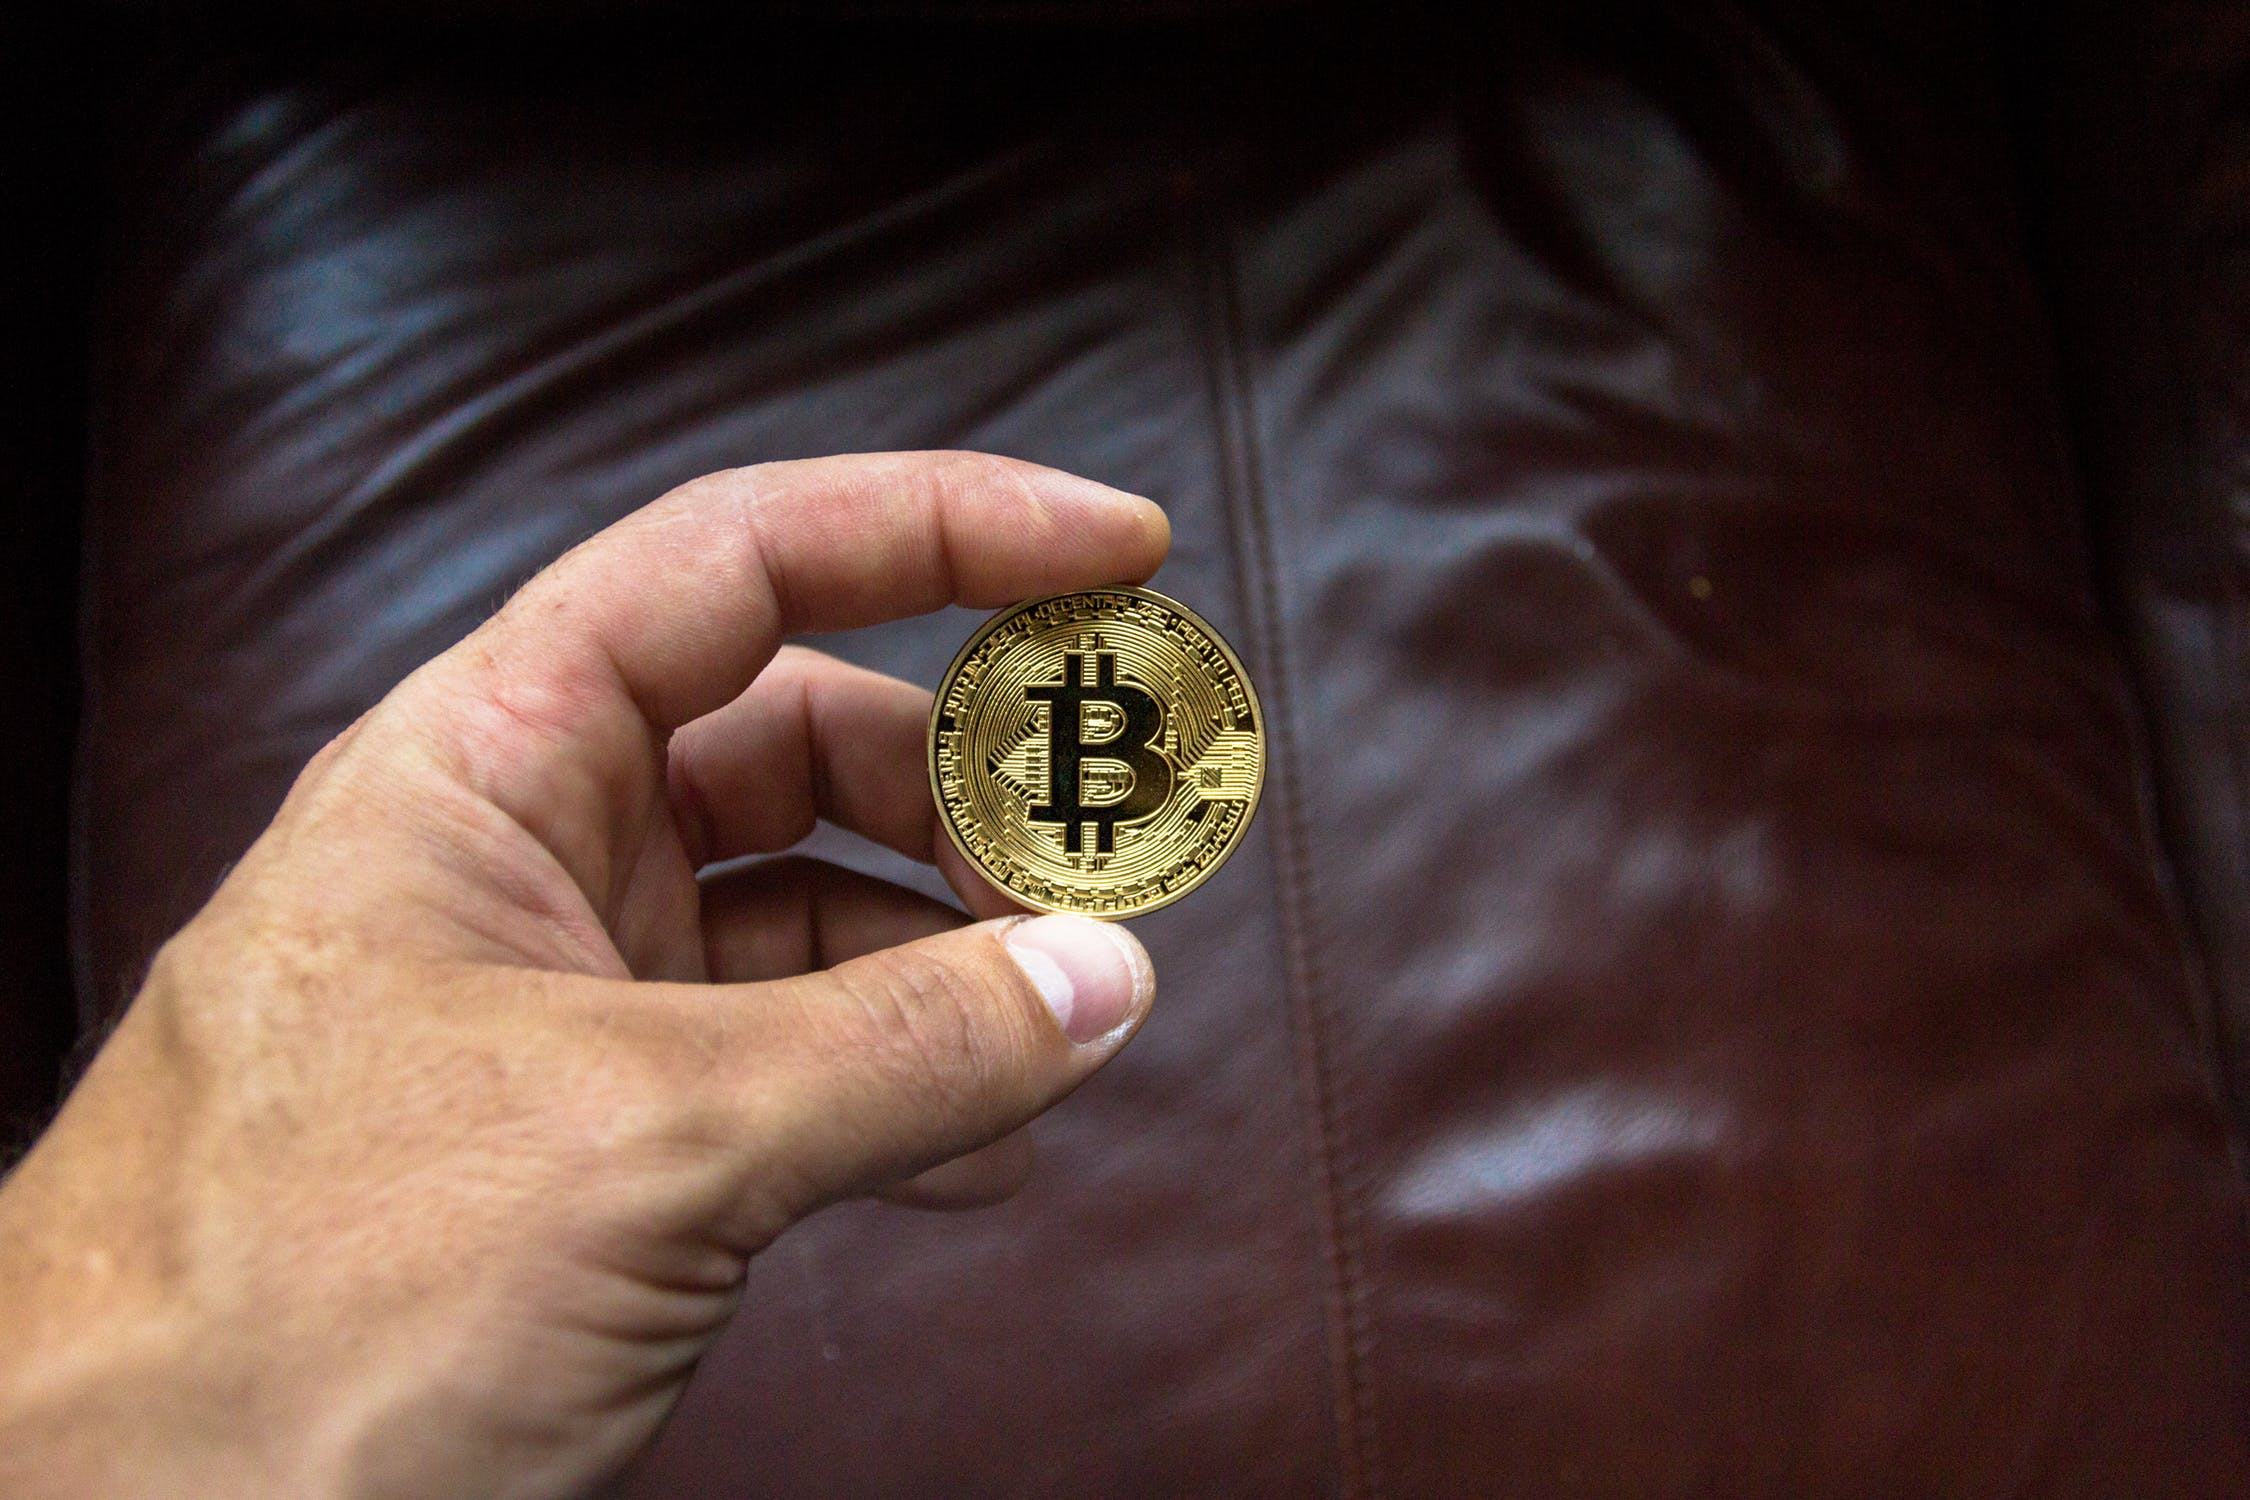 Bitcoin back past $10,000, Strong Rally 2